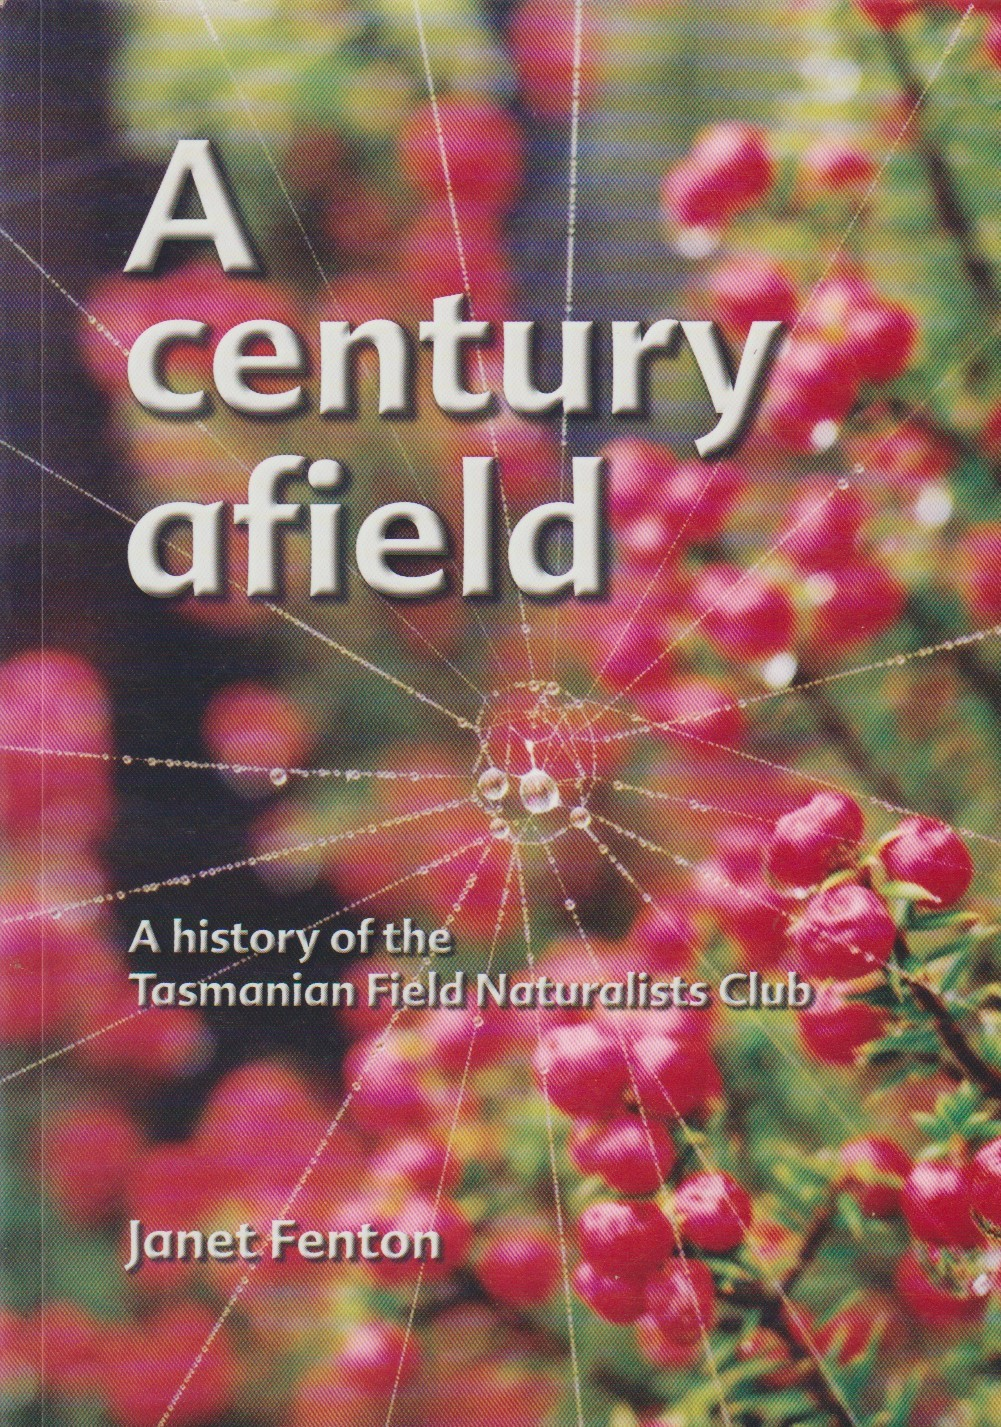 A Century Afield - Tasmanian Field Naturalists Club history